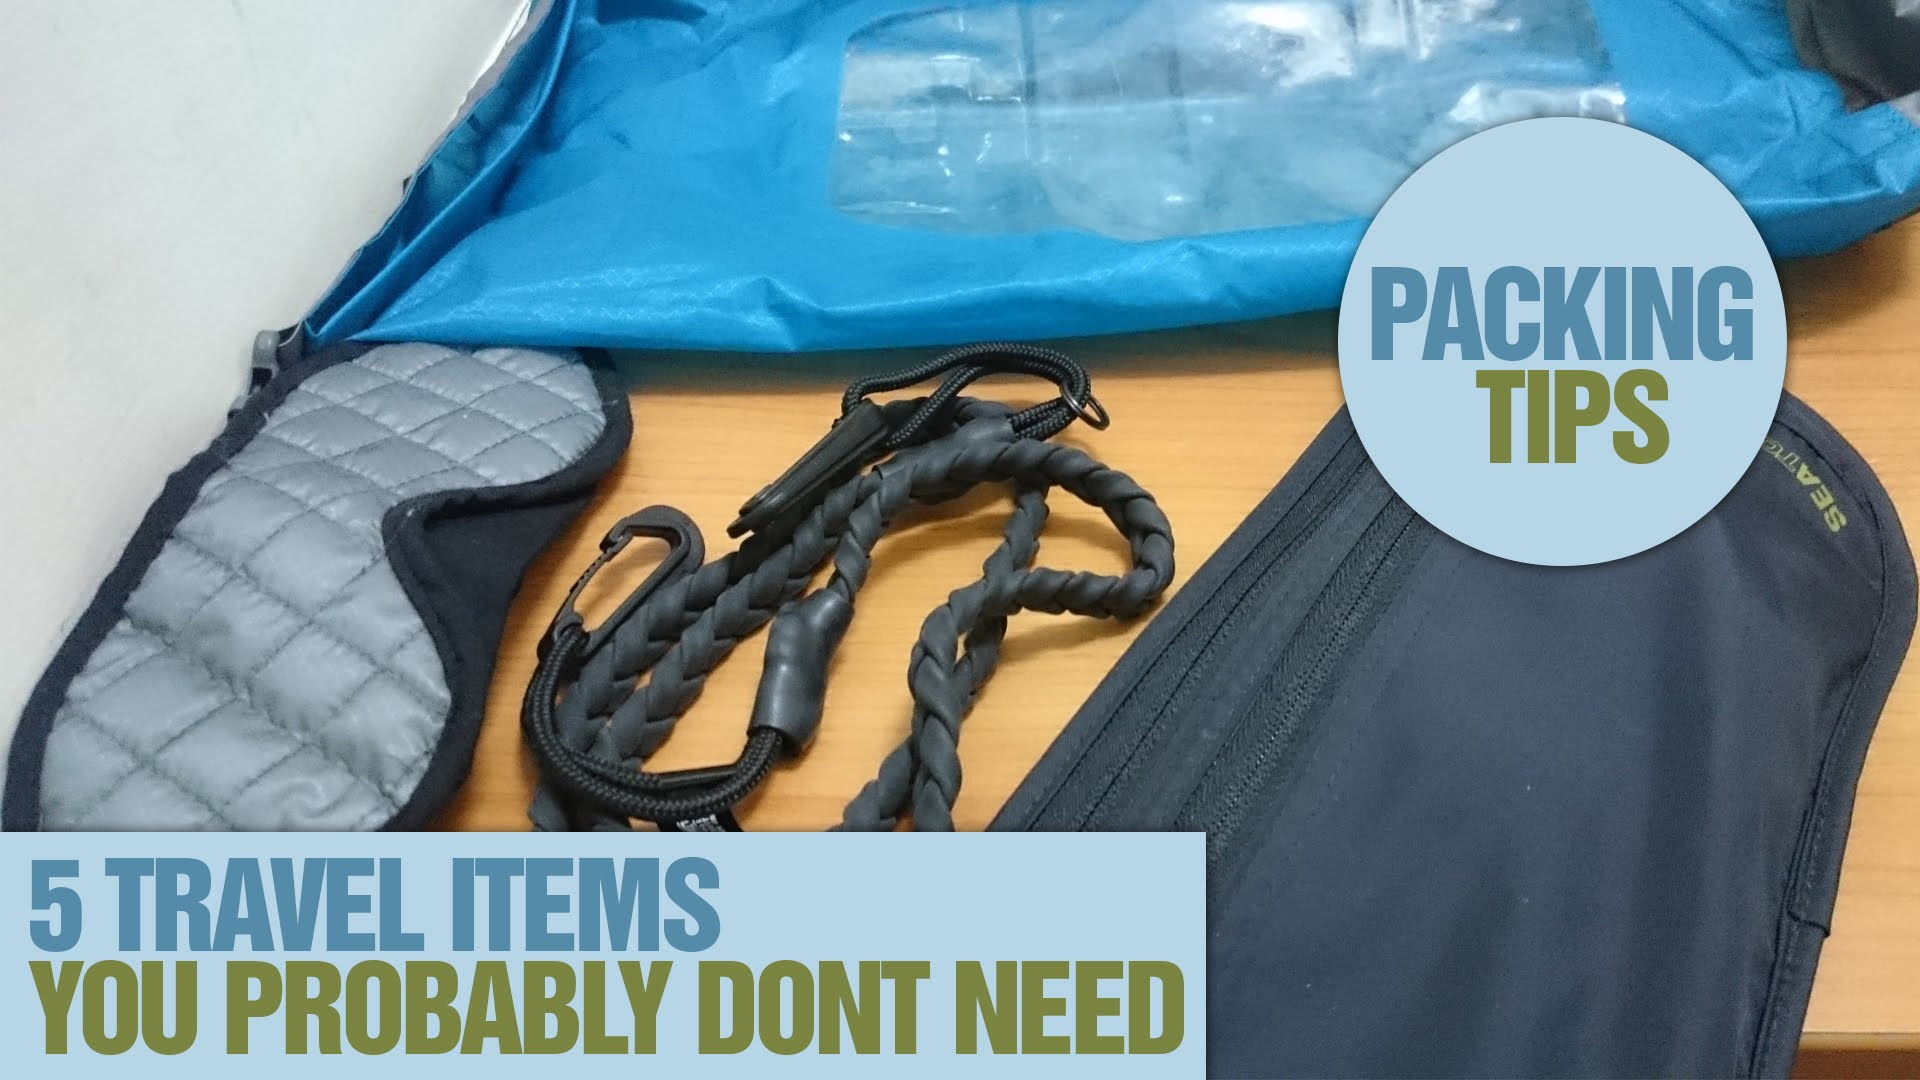 Packing-Tips-5-Travel-Items-You-Probably-Dont-Need